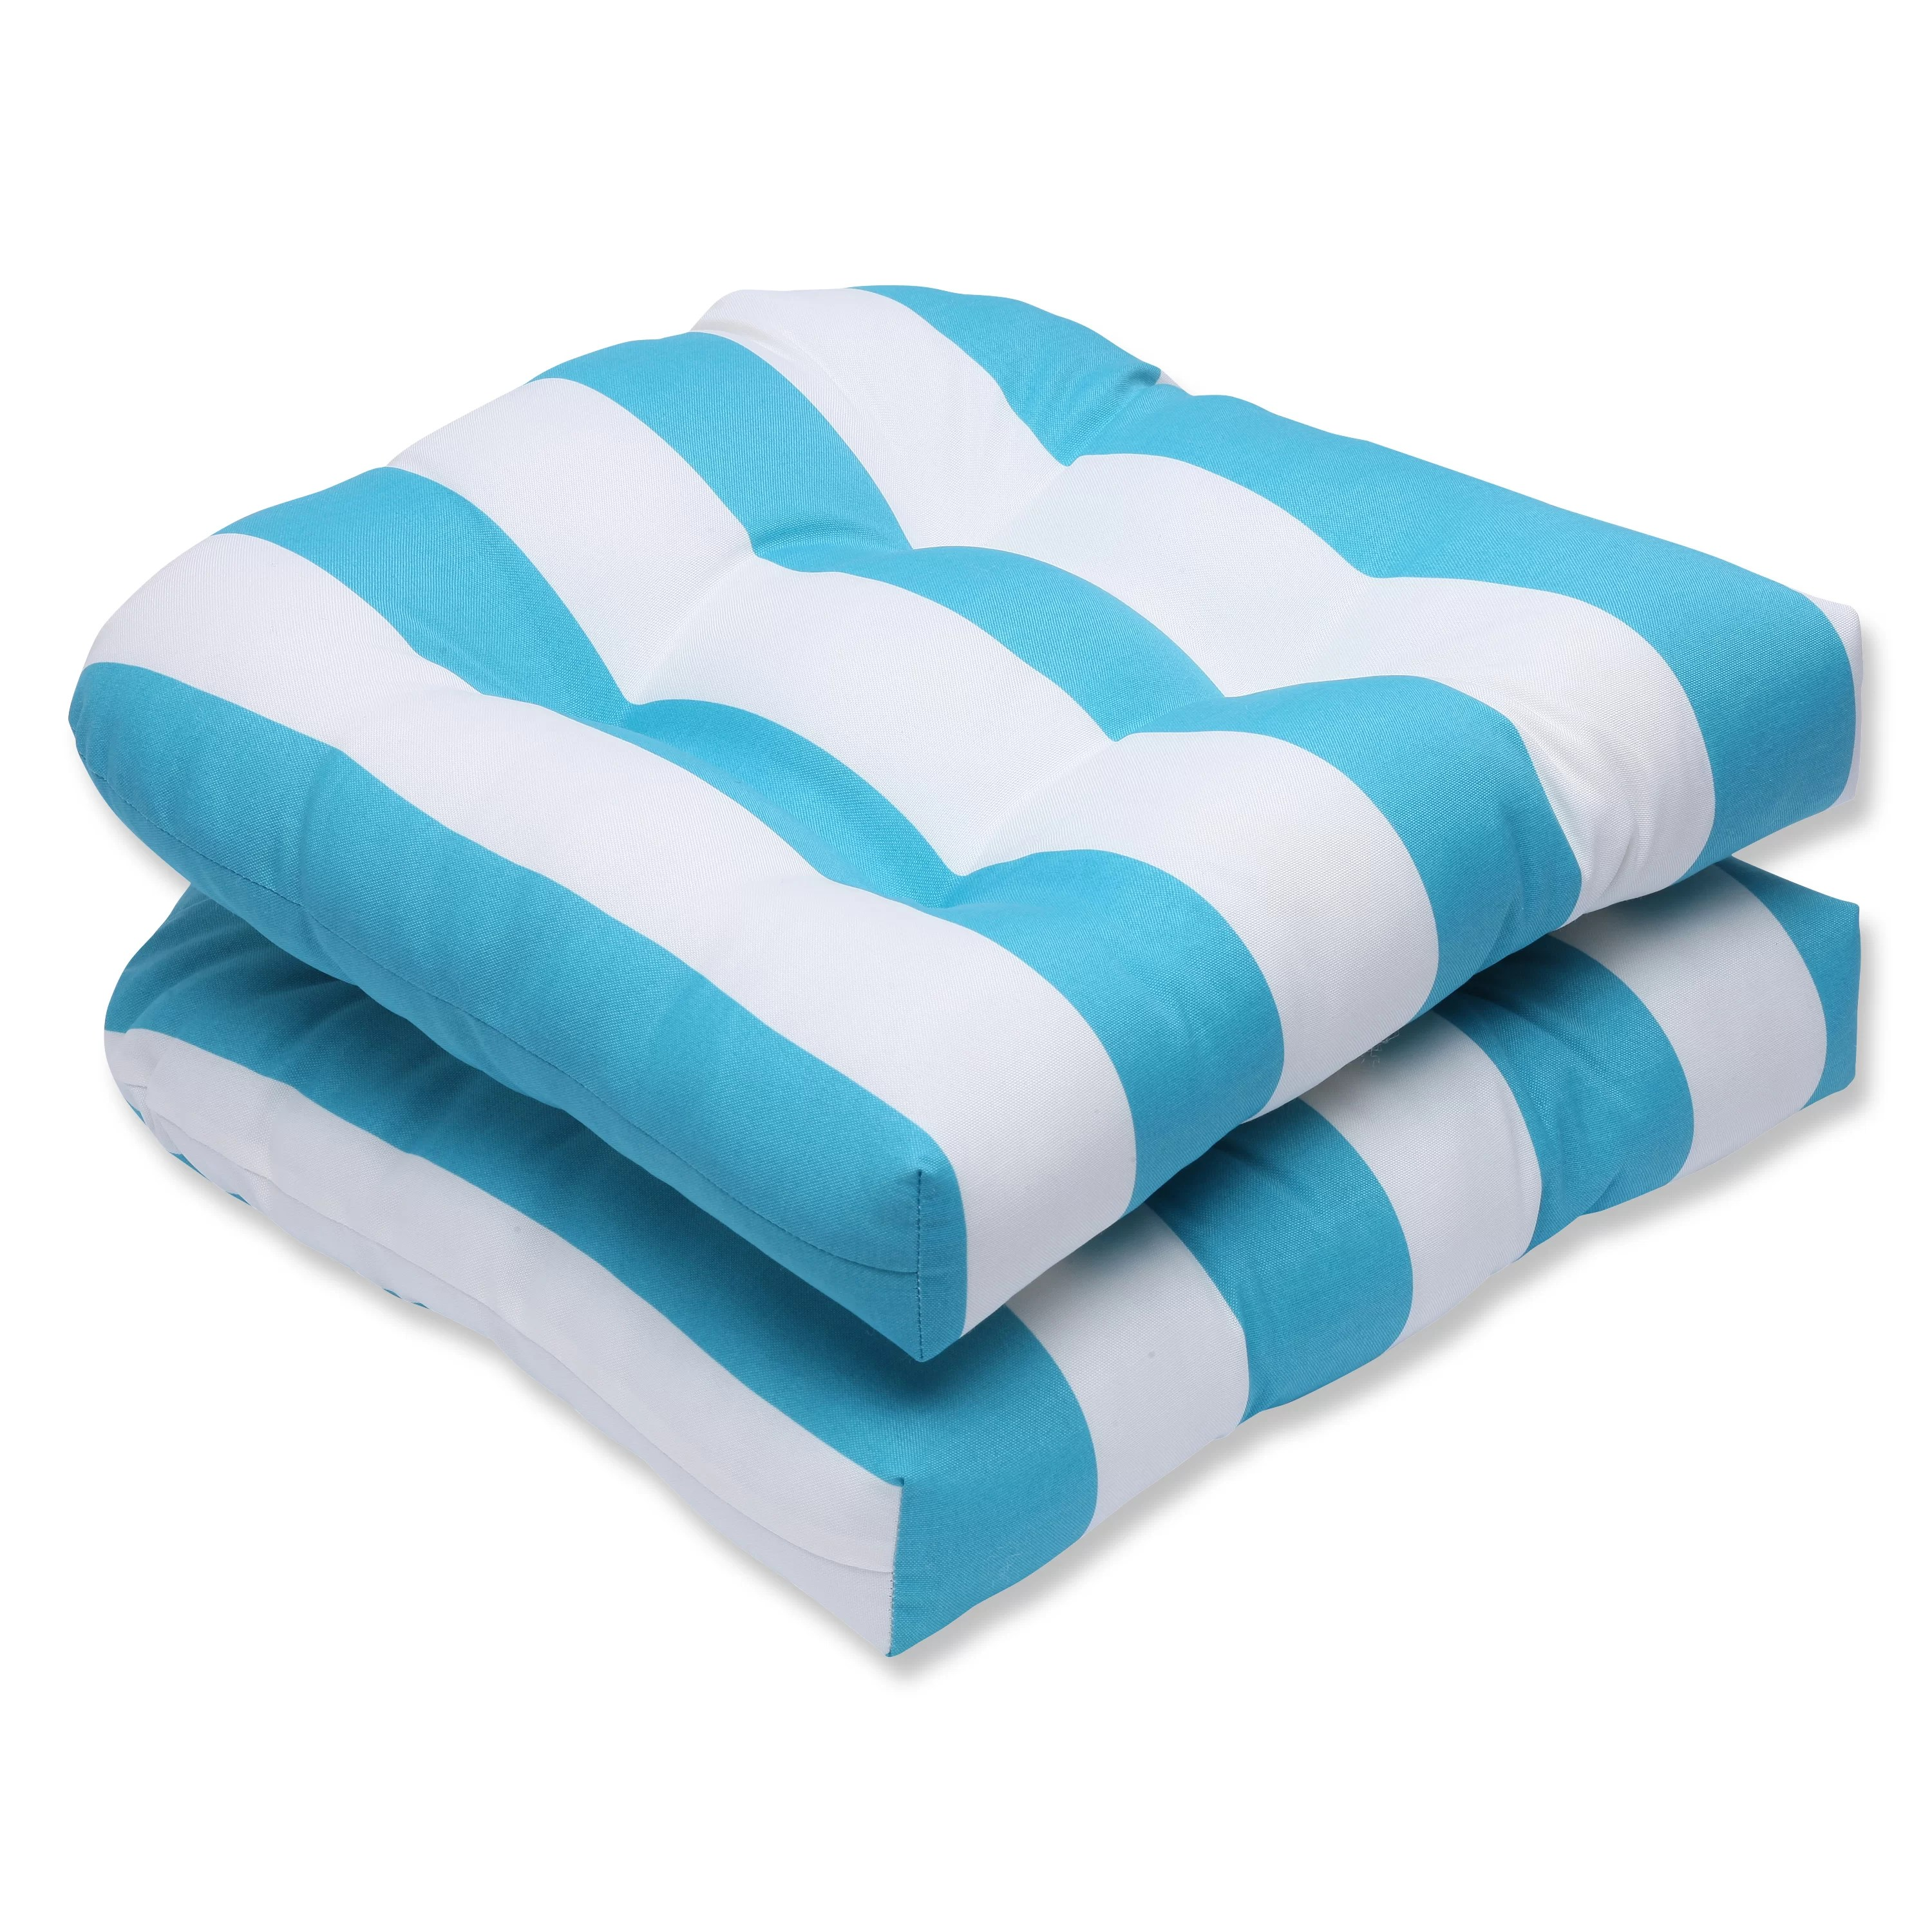 dining chair cushions target oak kitchen table and chairs canada pillow perfect cabana stripe outdoor cushion